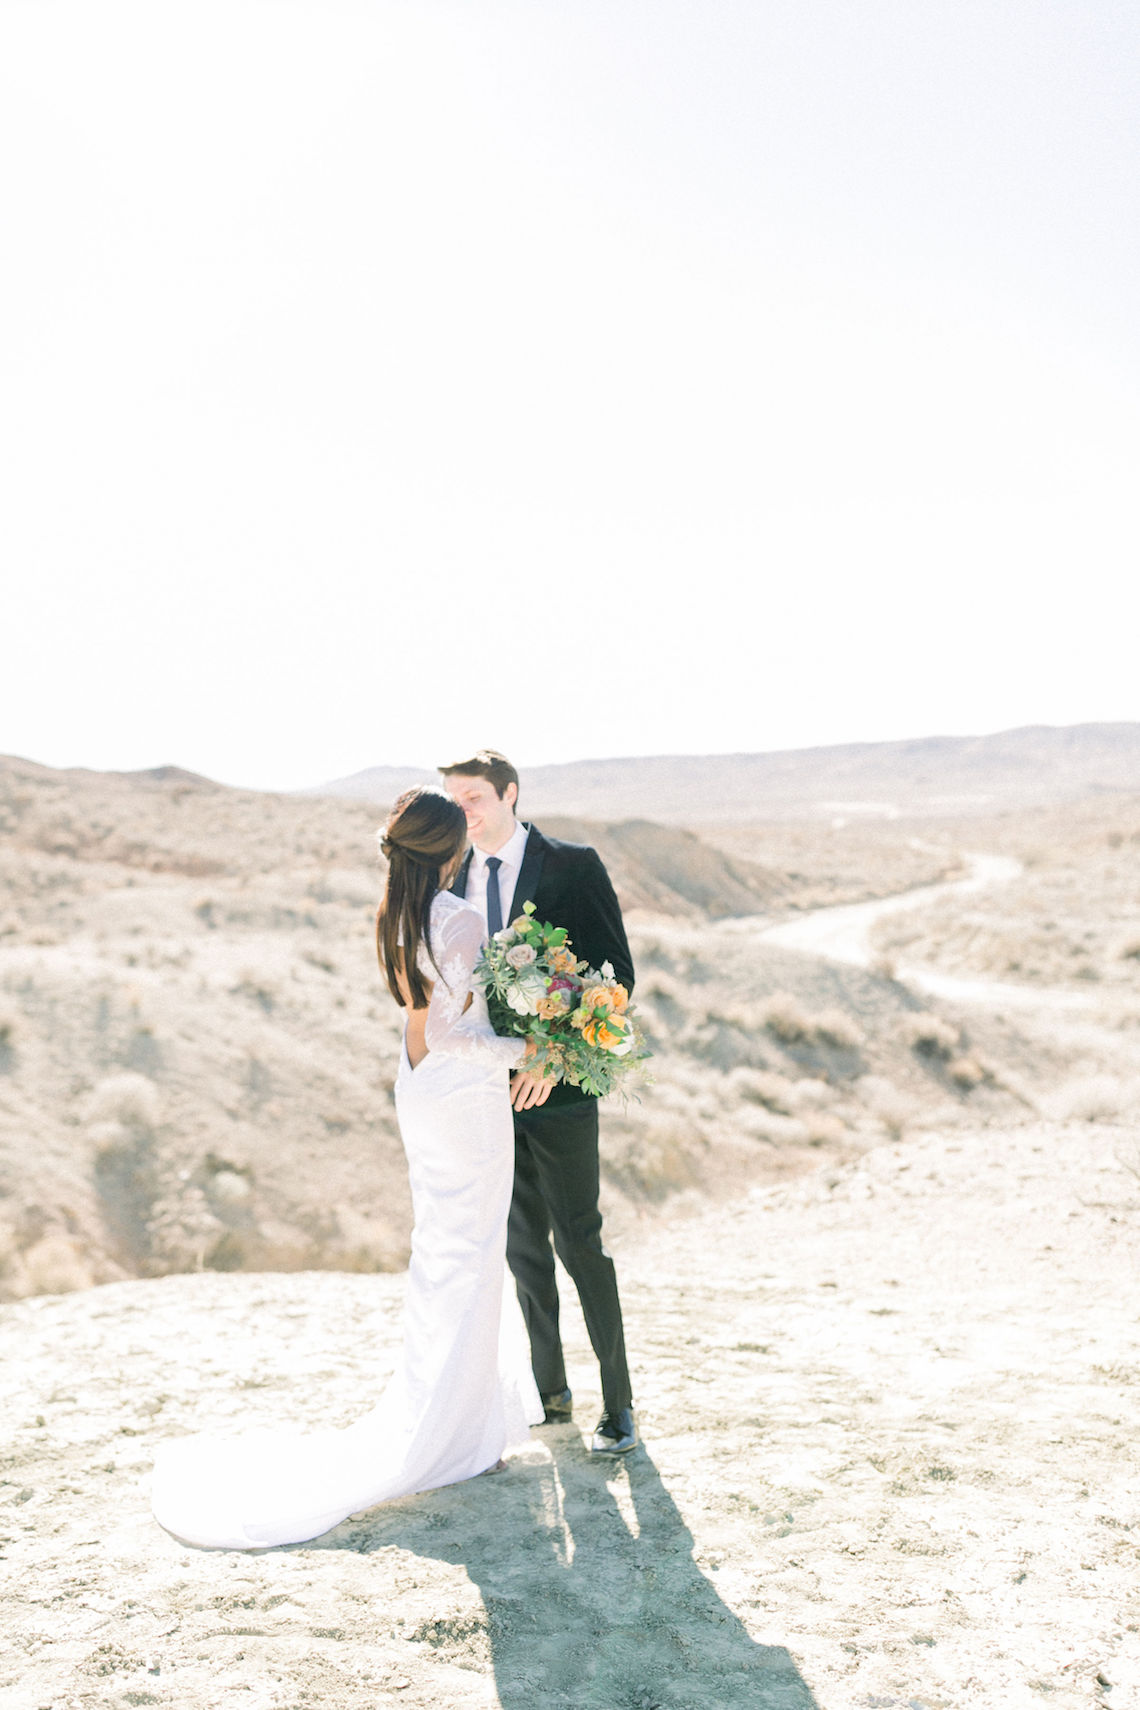 Rainbow Basin Desert Wedding Inspiration with Moon Stationery – Victoria Masai Photography 5